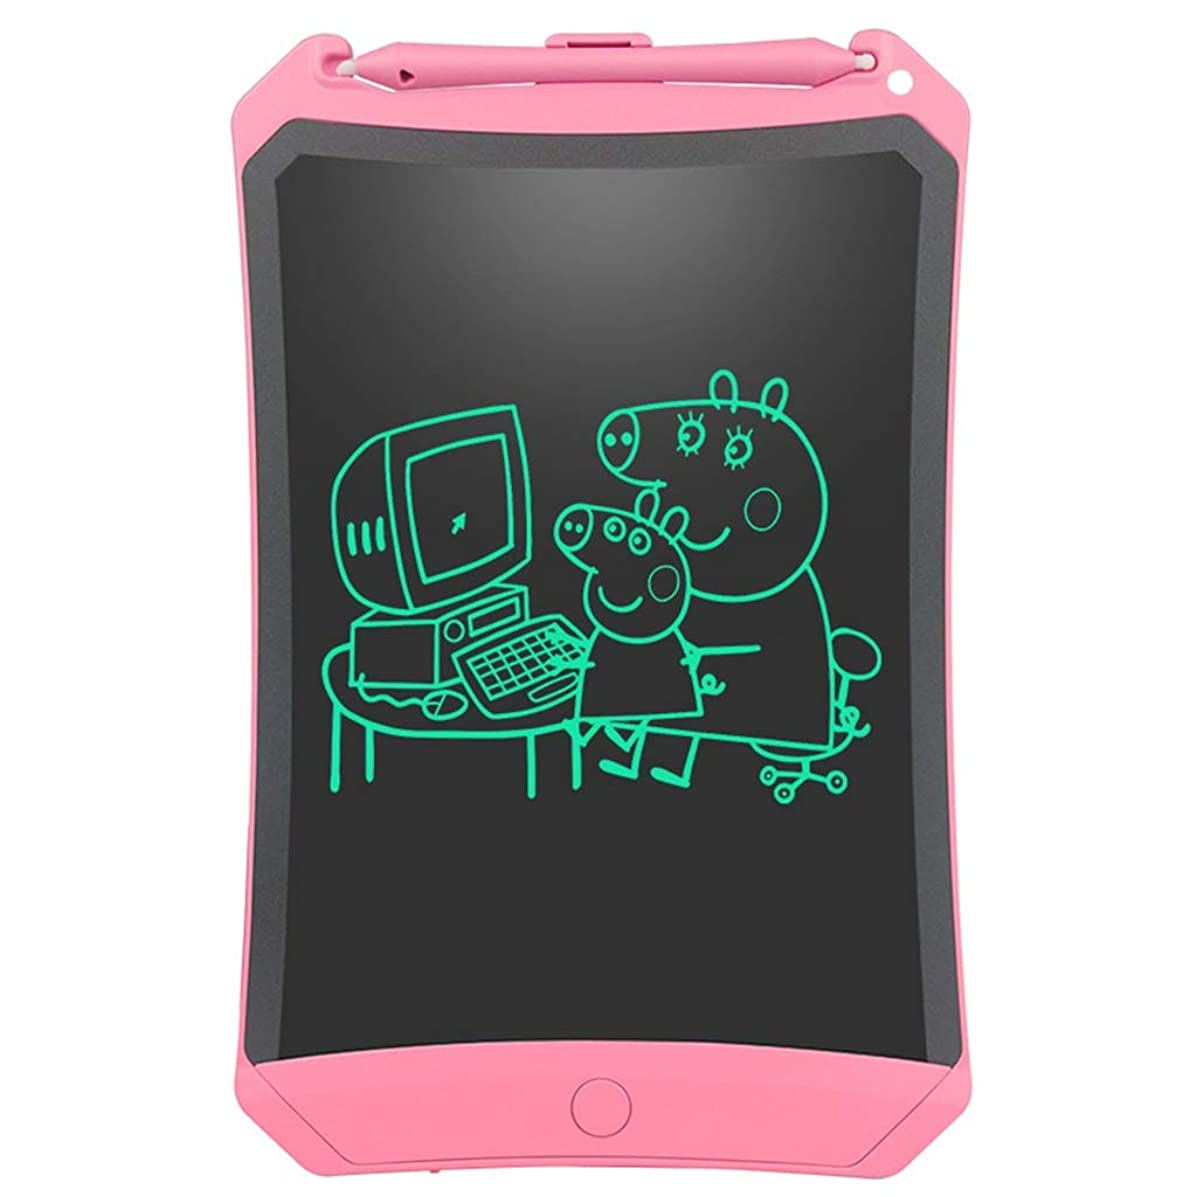 Electronic Writing Board/LCD Writing Board/Children's Drawing Graffiti Board/with Lock Screen, Magnet/Suitable for Home, Office, School (Pink, Blue - 8.5 Inch)